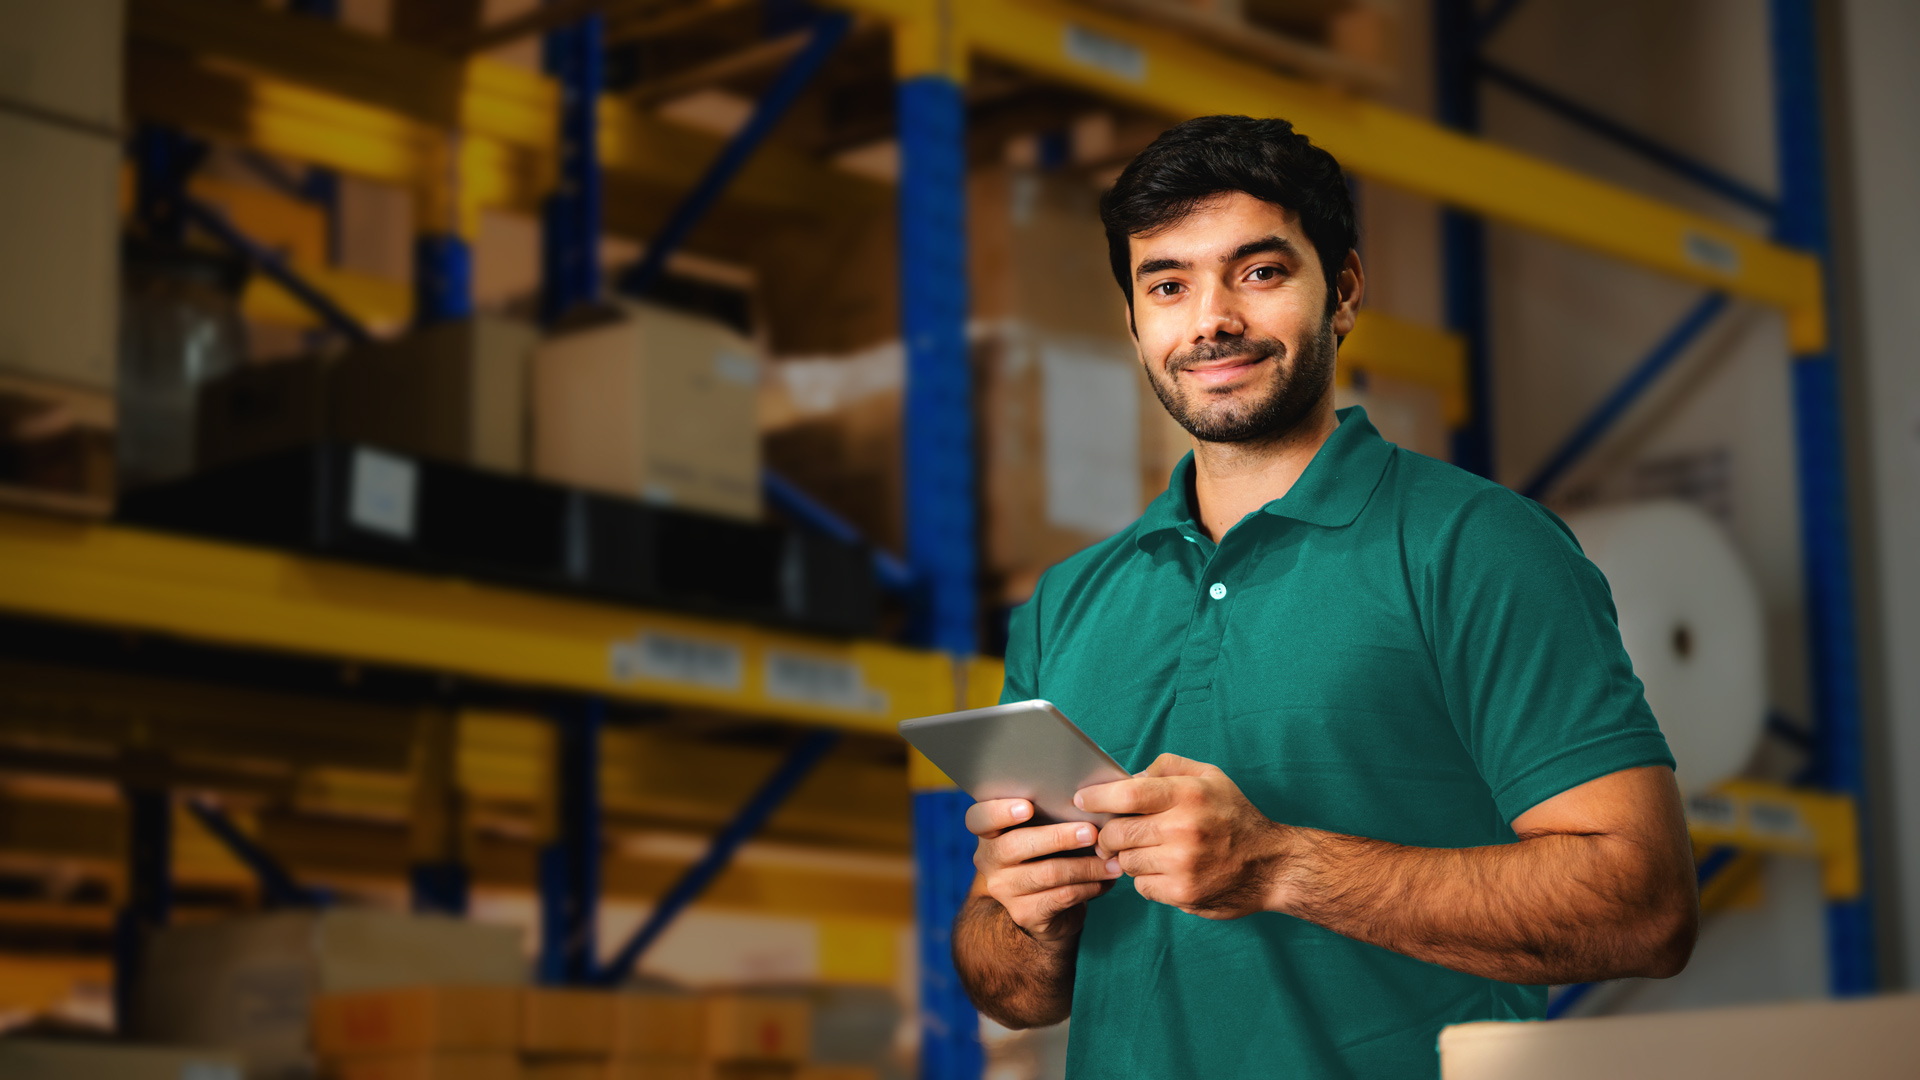 Warehousing Report: Third-Party Logistics Companies Now Leading Occupiers of Warehouse Space